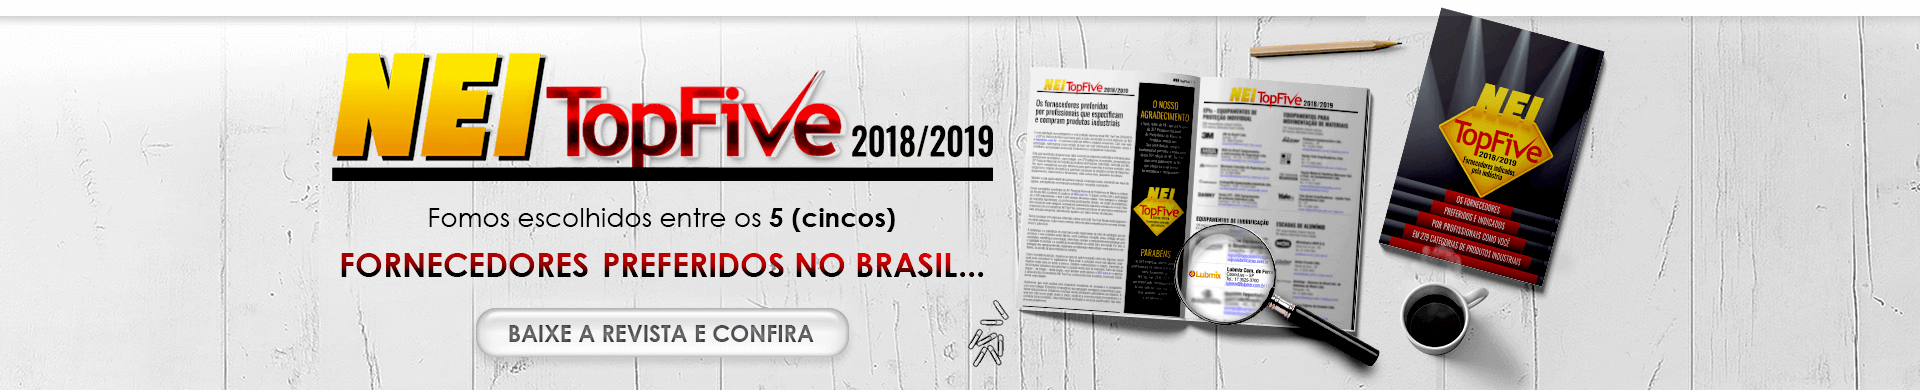 Revista Nei Top Five 2018-2019